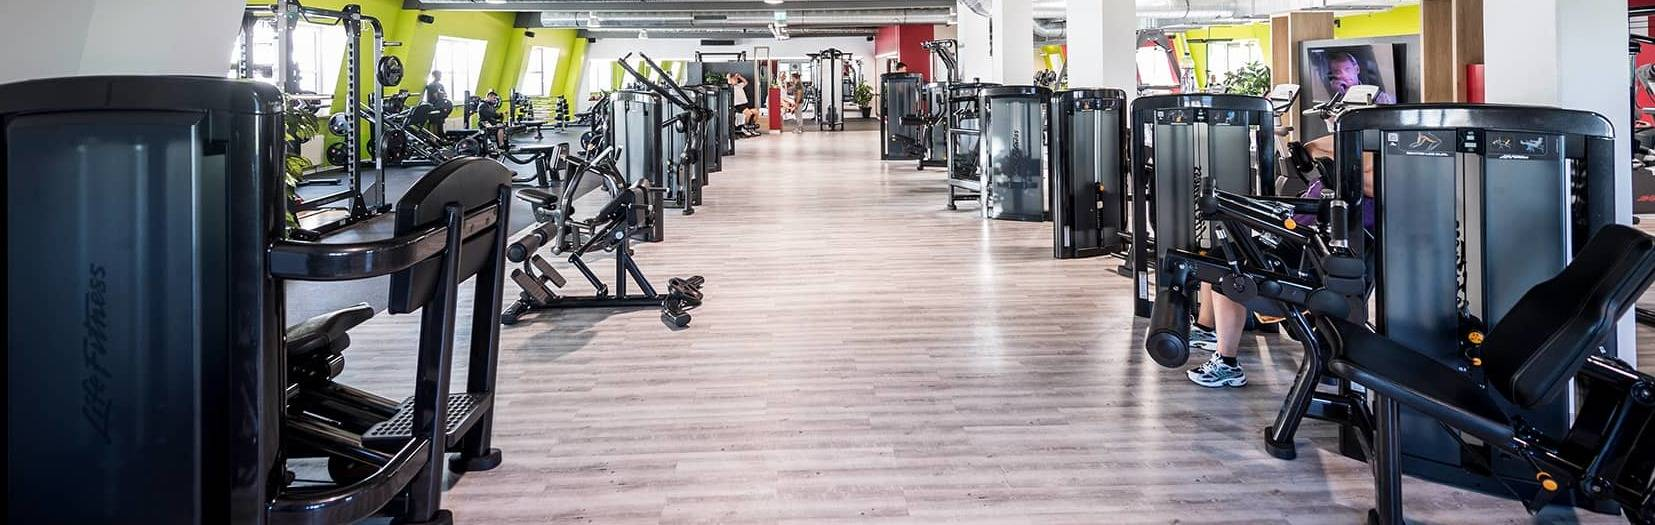 jumpers fitness Cardio